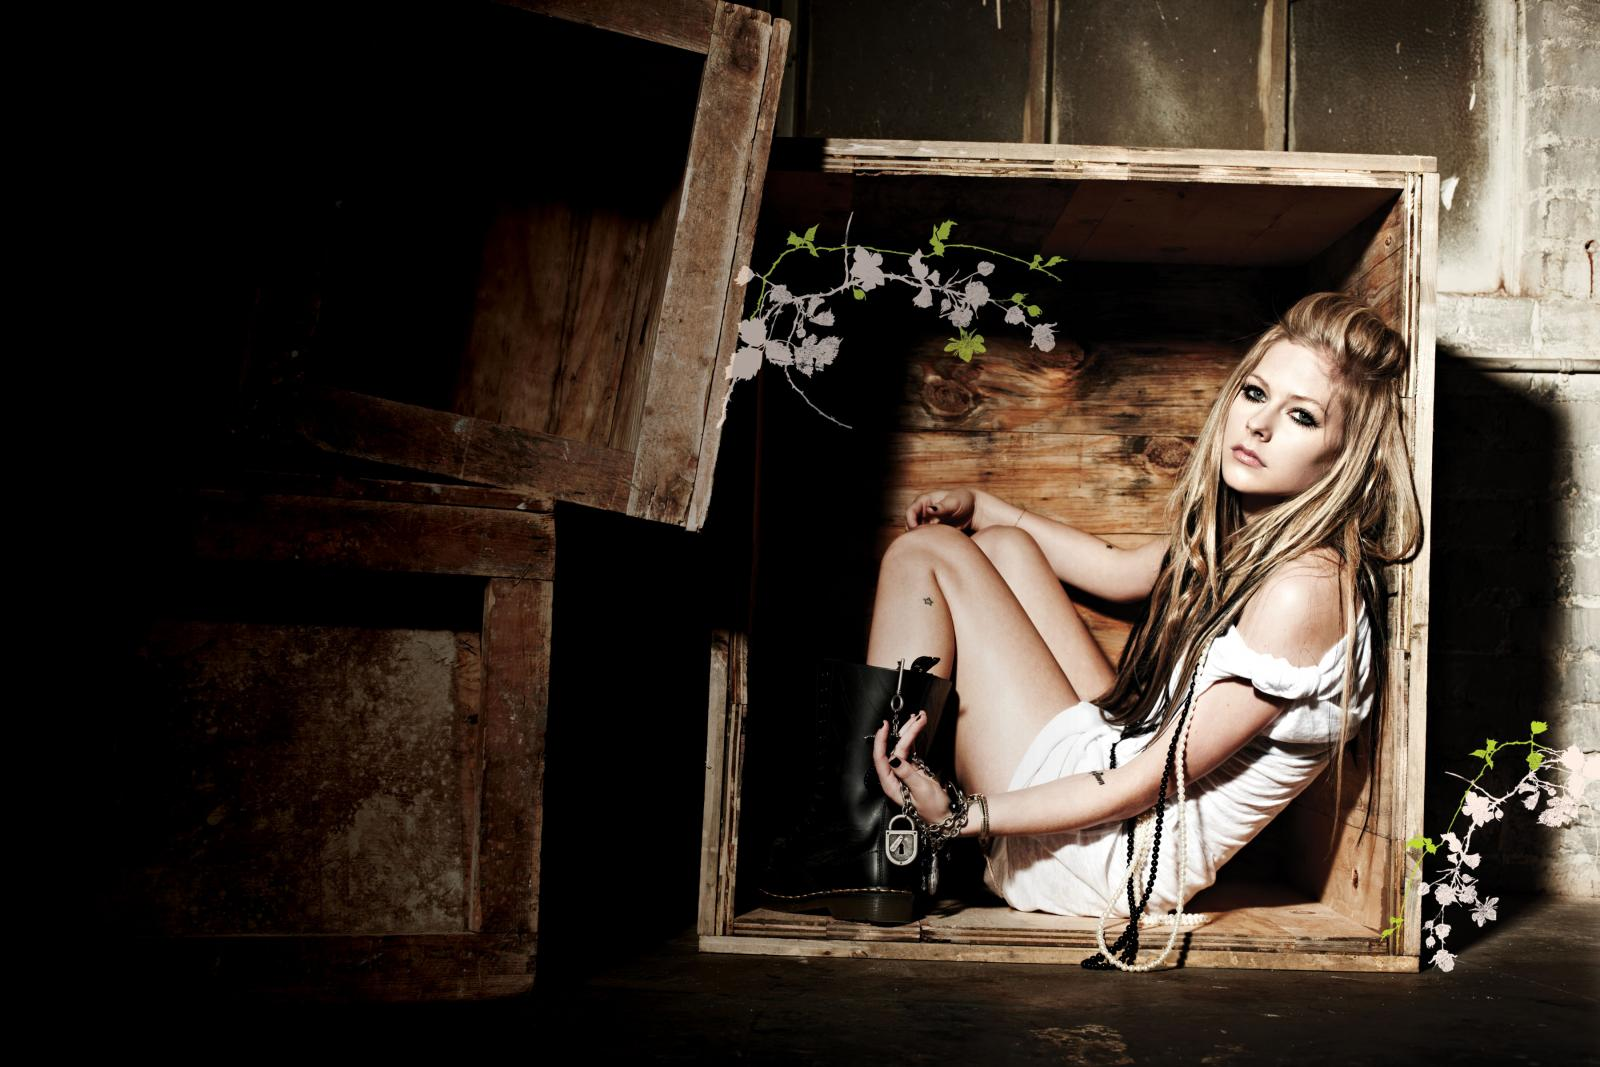 77 Images About Avril Lavigne On We Heart It See More About